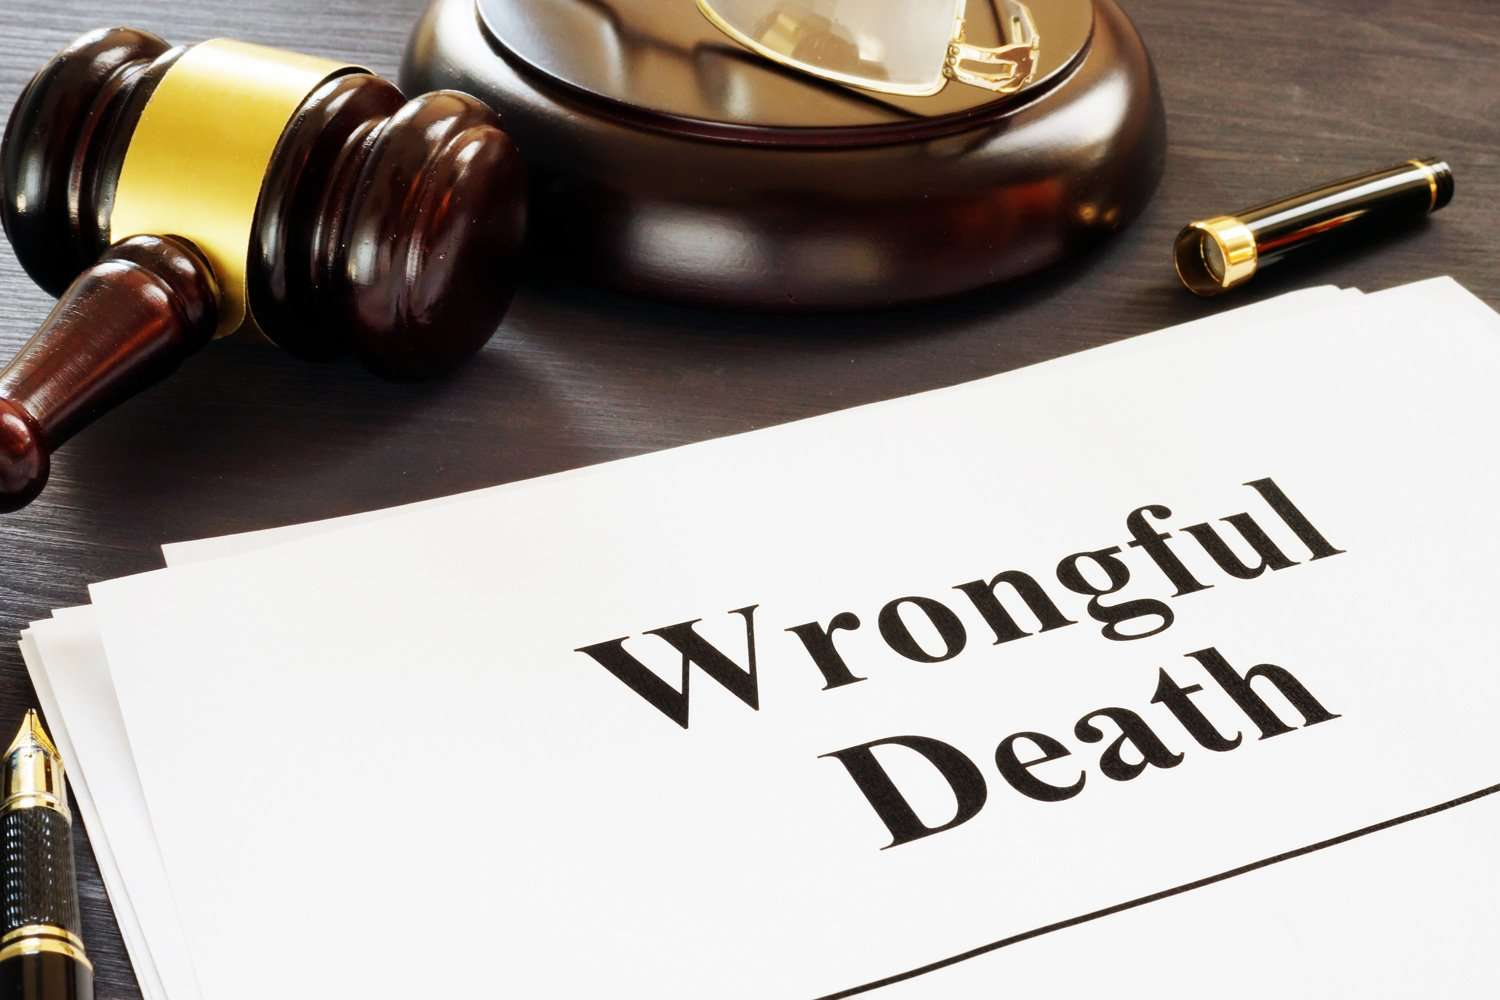 wrongful death lawsuit papers sitting on a desk with a gavel